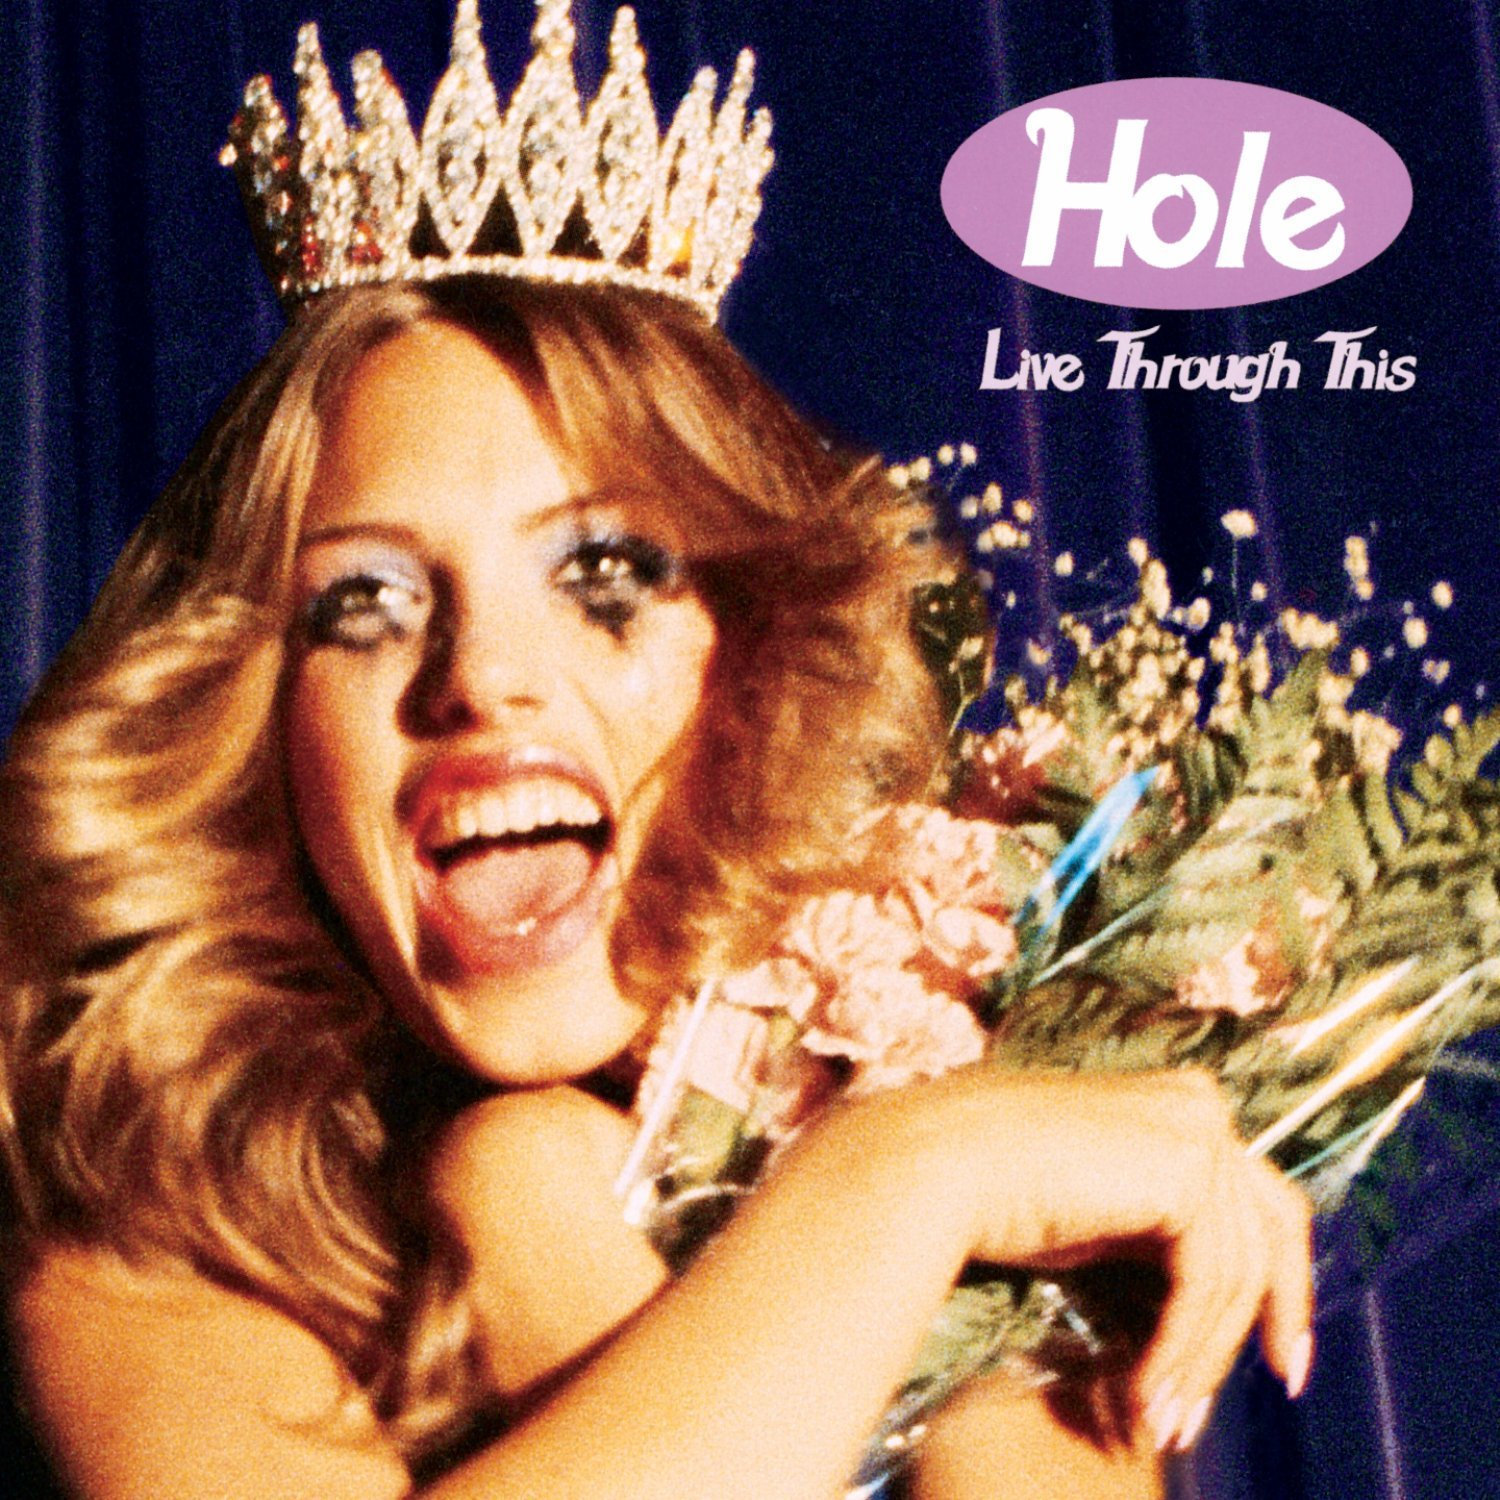 hole live through this The Top 10 Grunge Albums of All Time